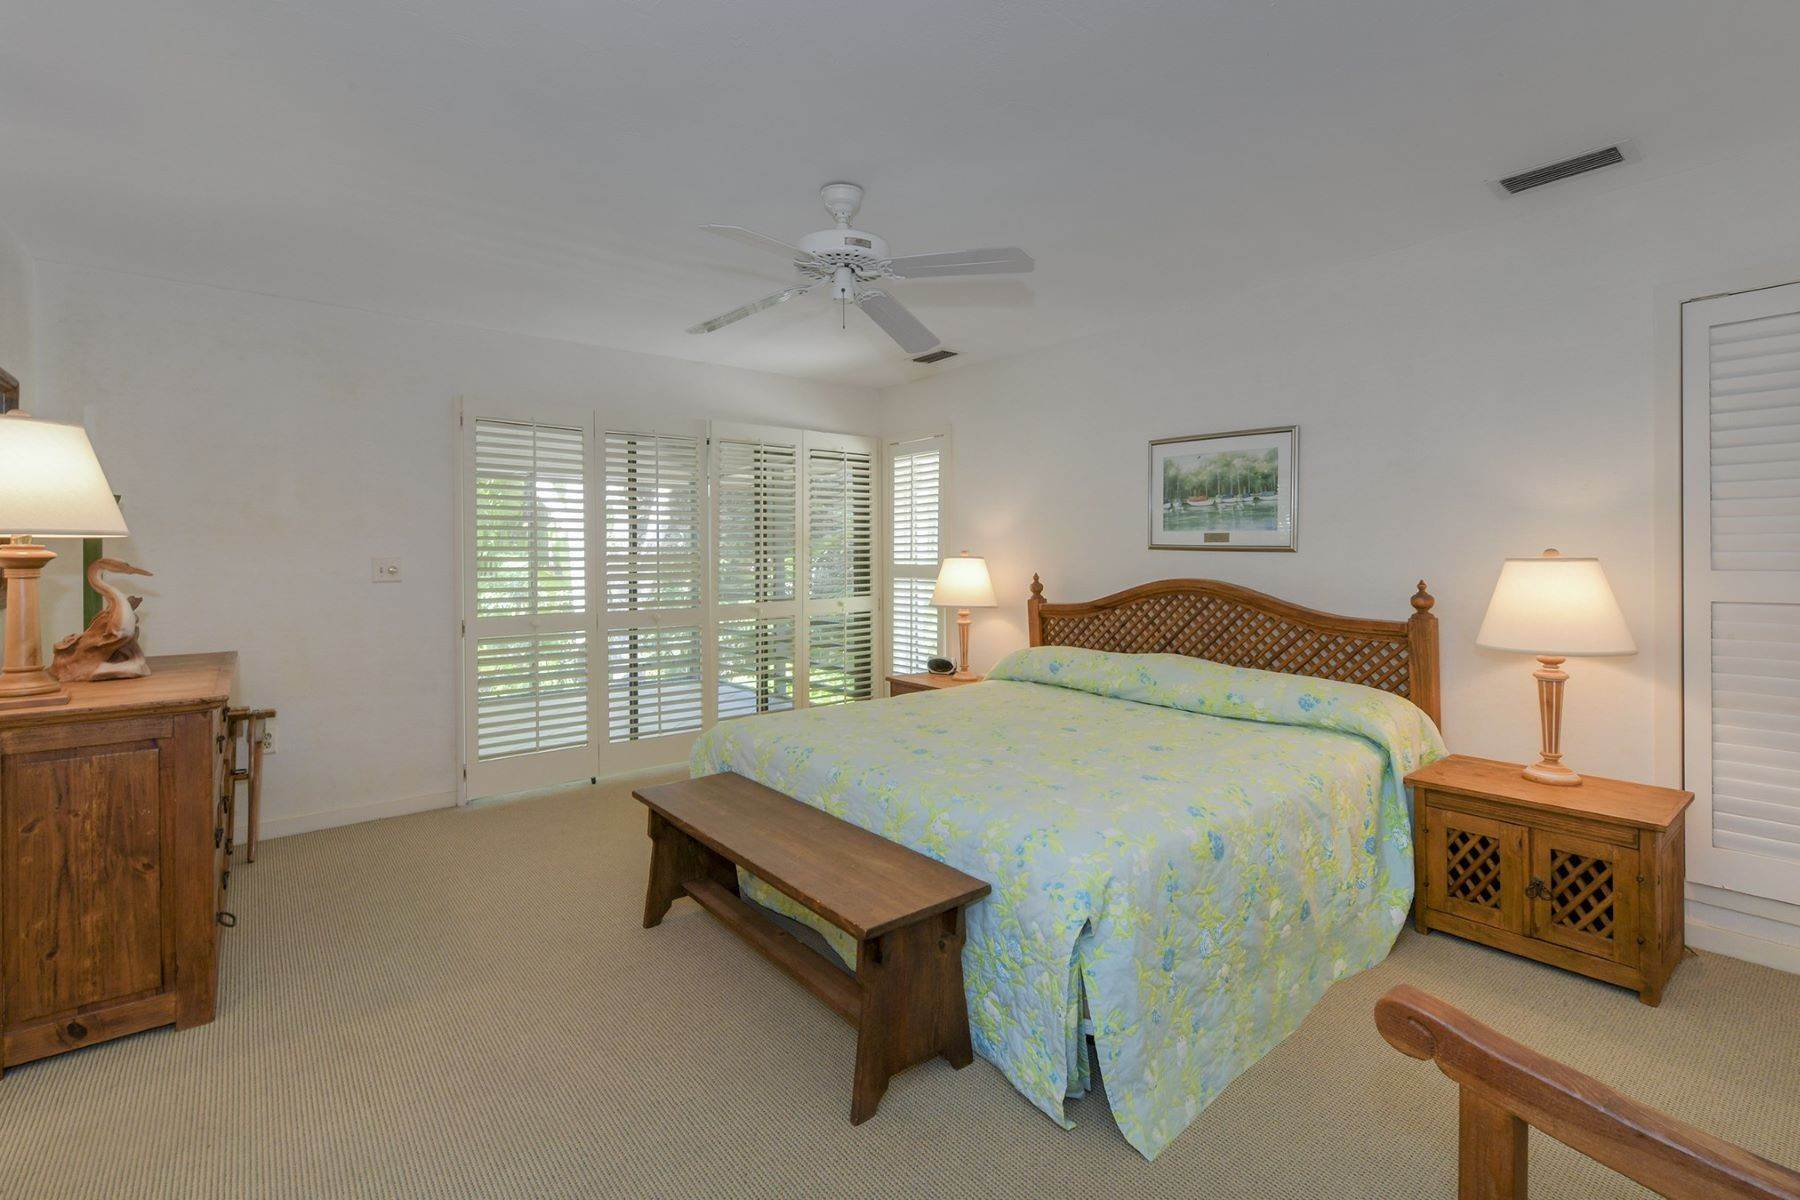 27. Property for Sale at 10 Cannon Point, Key Largo, FL 10 Cannon Point Key Largo, Florida 33037 United States